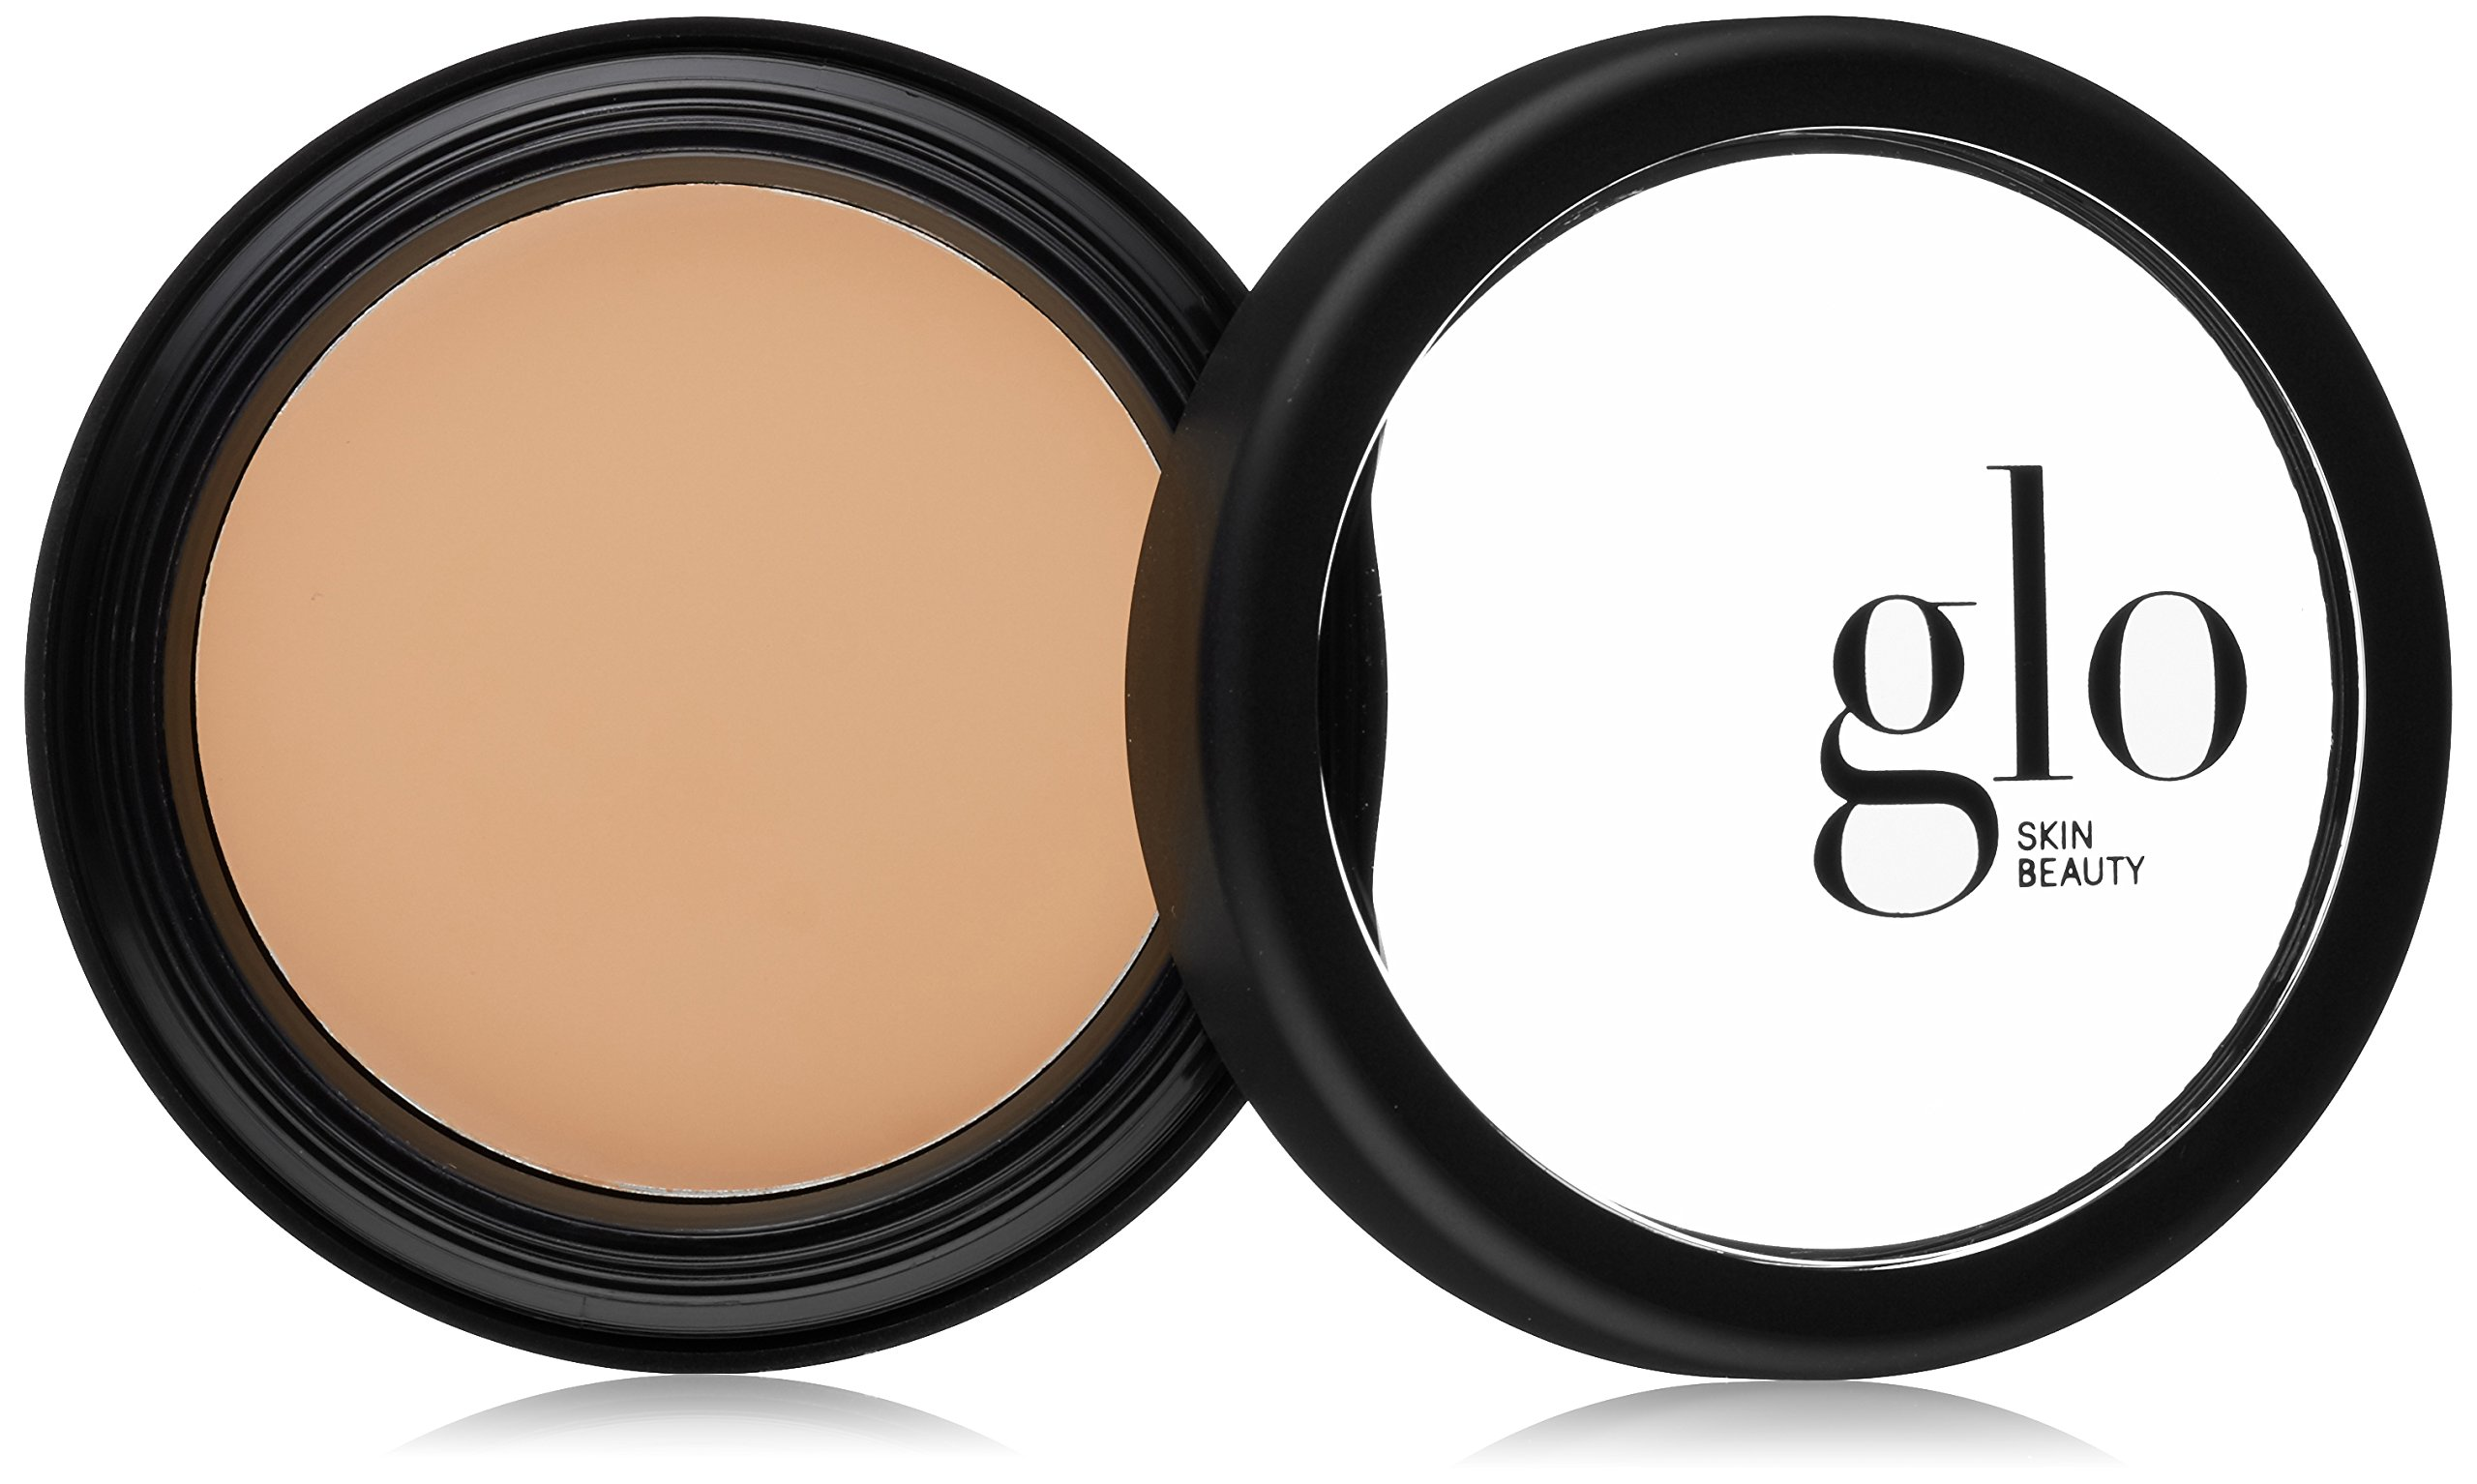 Glo Skin Beauty Oil Free Camouflage Concealer in Natural | Correct and Conceal Pimples, Scars, and Dark Spots | 4 Shades by Glo Skin Beauty